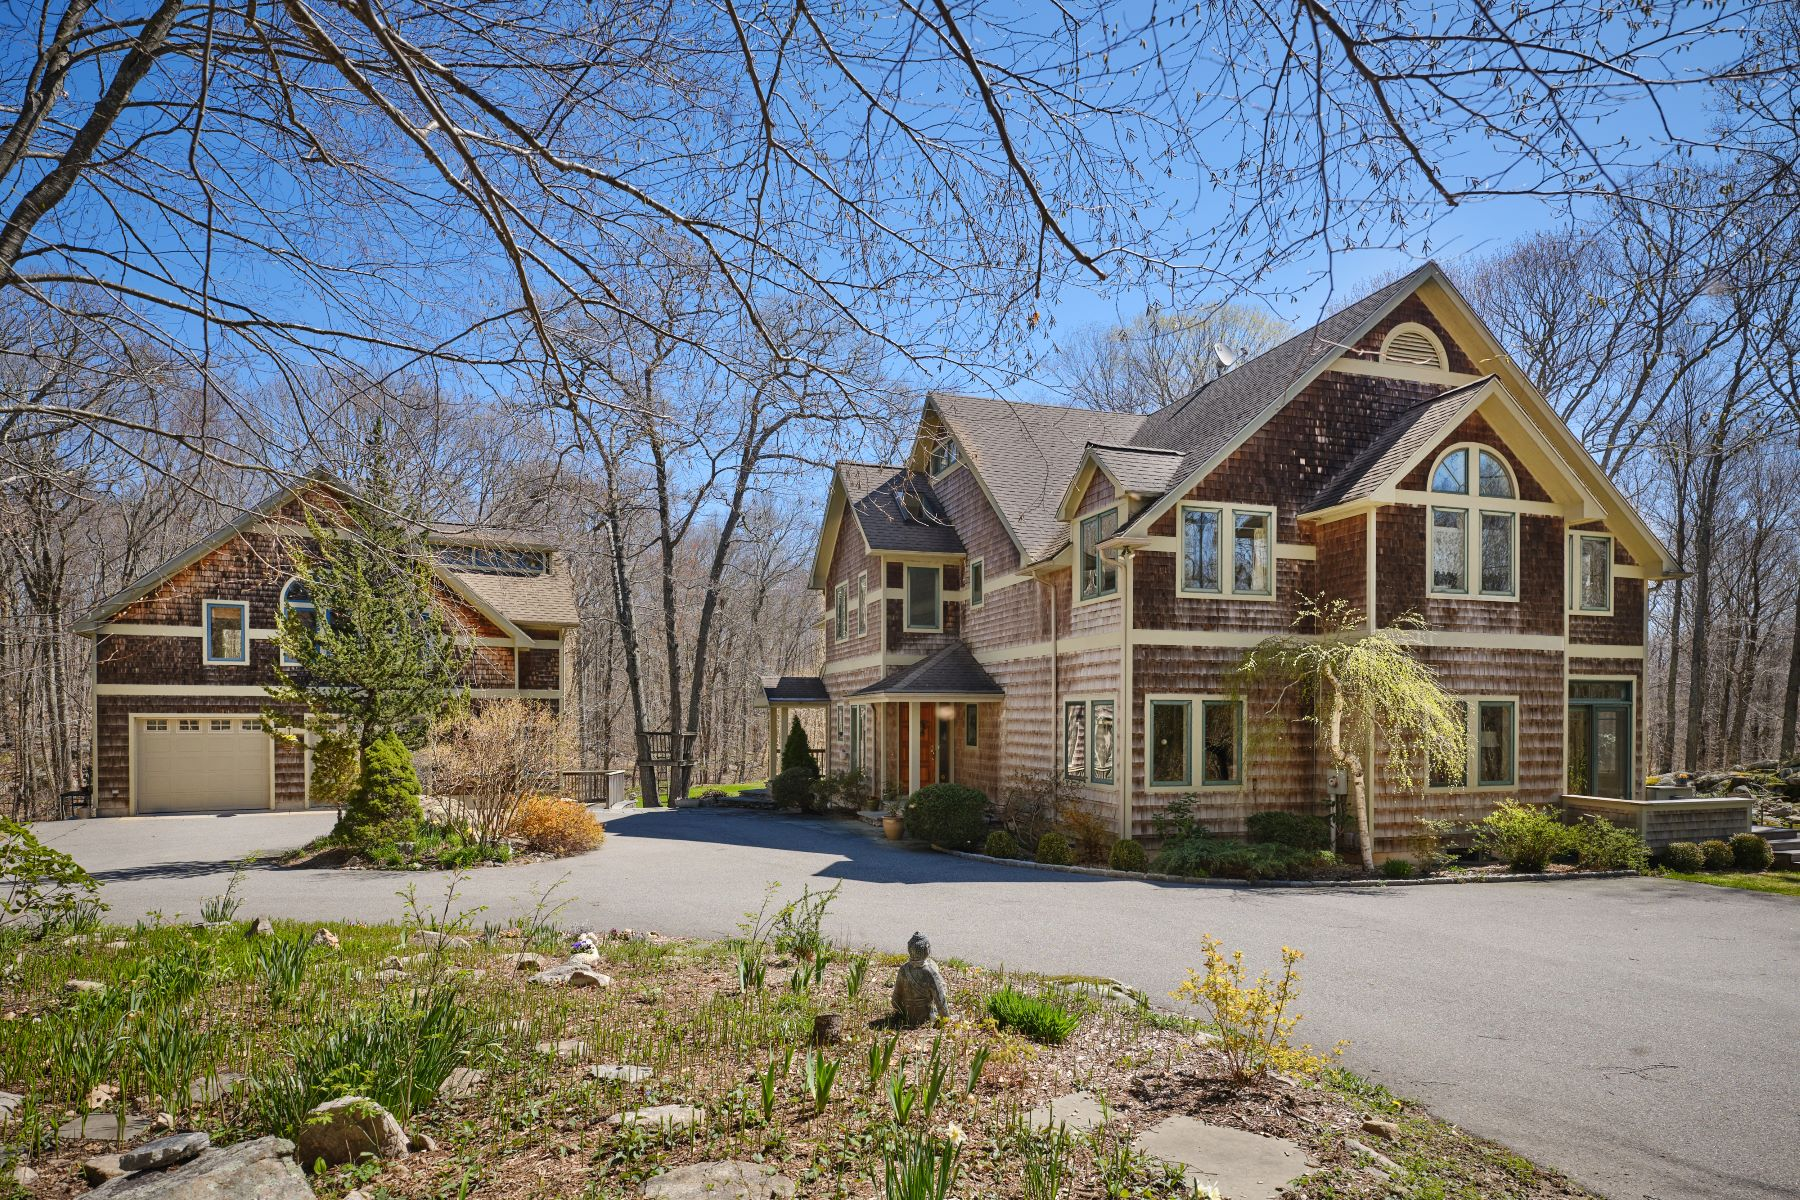 Single Family Homes for Sale at Private Country Home, Stonington, CT 17 Back Acres Way Stonington, Connecticut 06378 United States